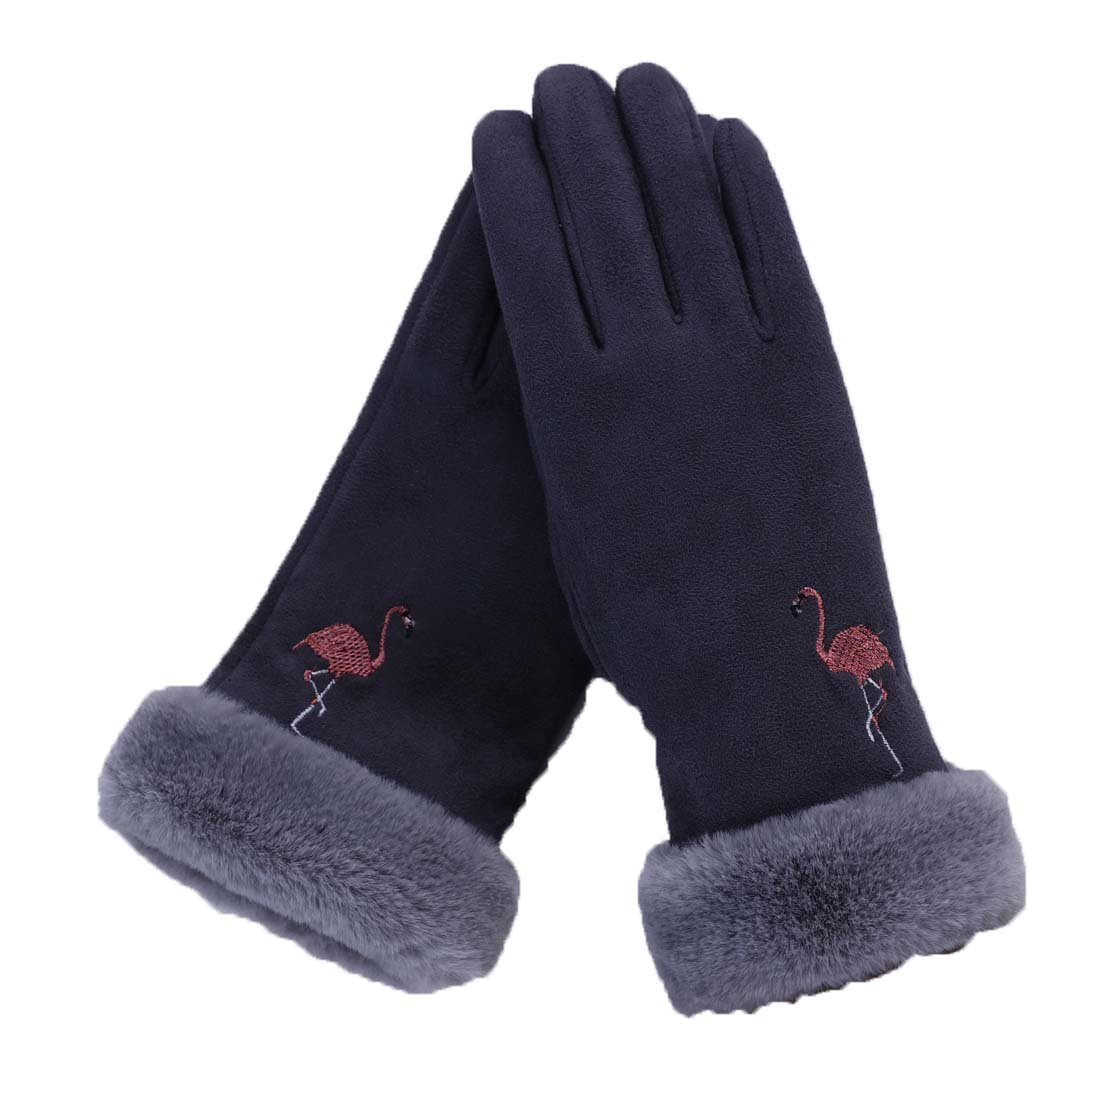 Yingniao Womens Touch Screen Glove motorcycle driving Winter warmer windproof thick lined Mittens (Black)